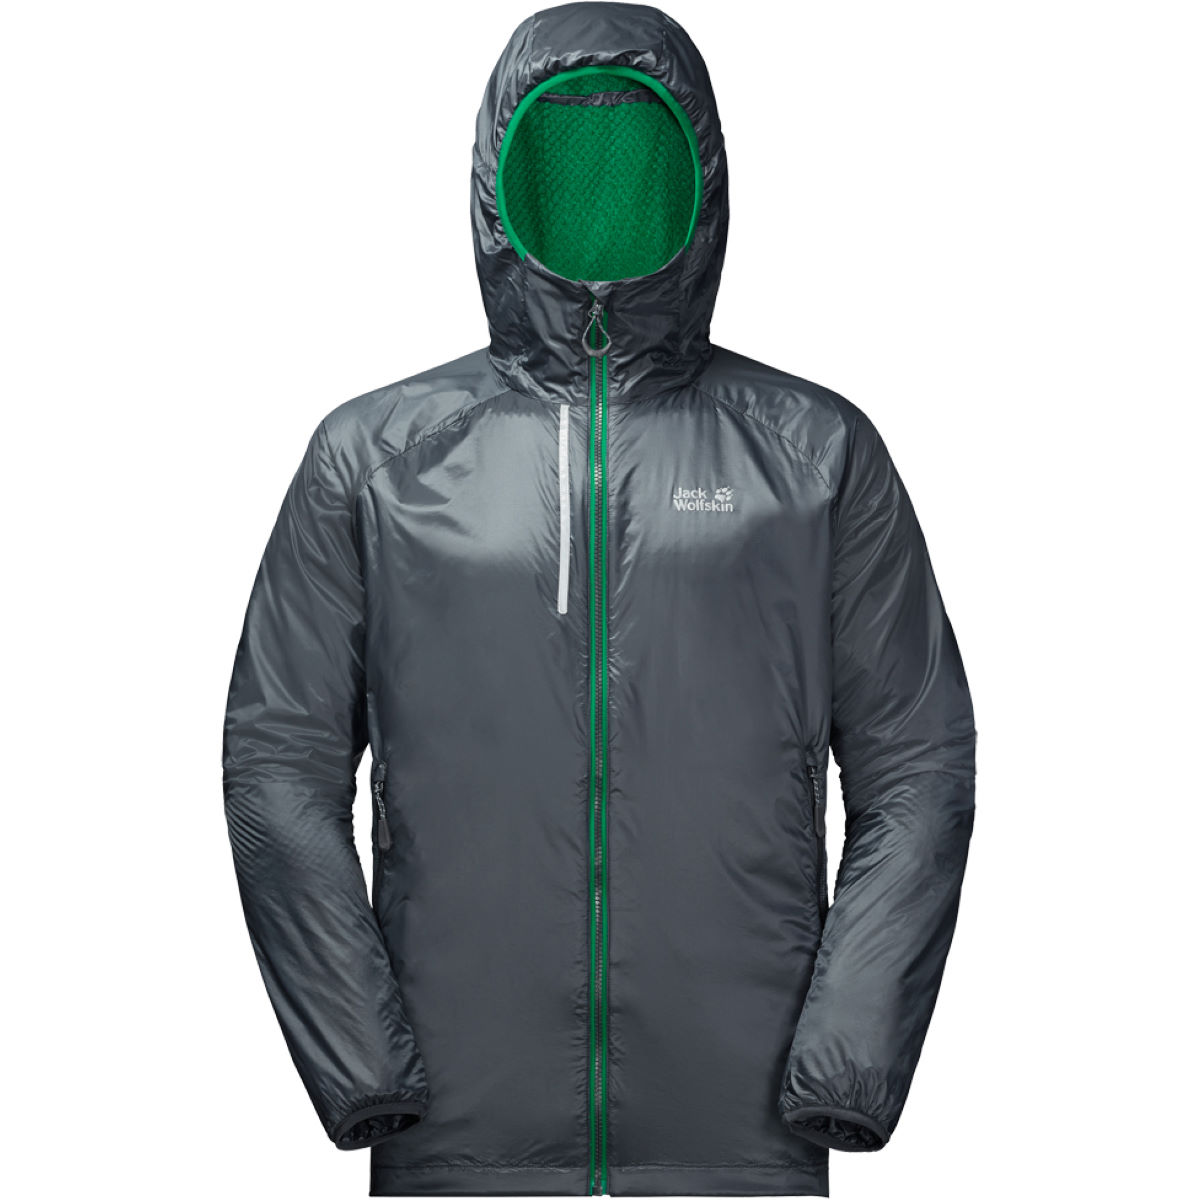 Veste Jack Wolfskin Air Lock - Small Ebony Vestes